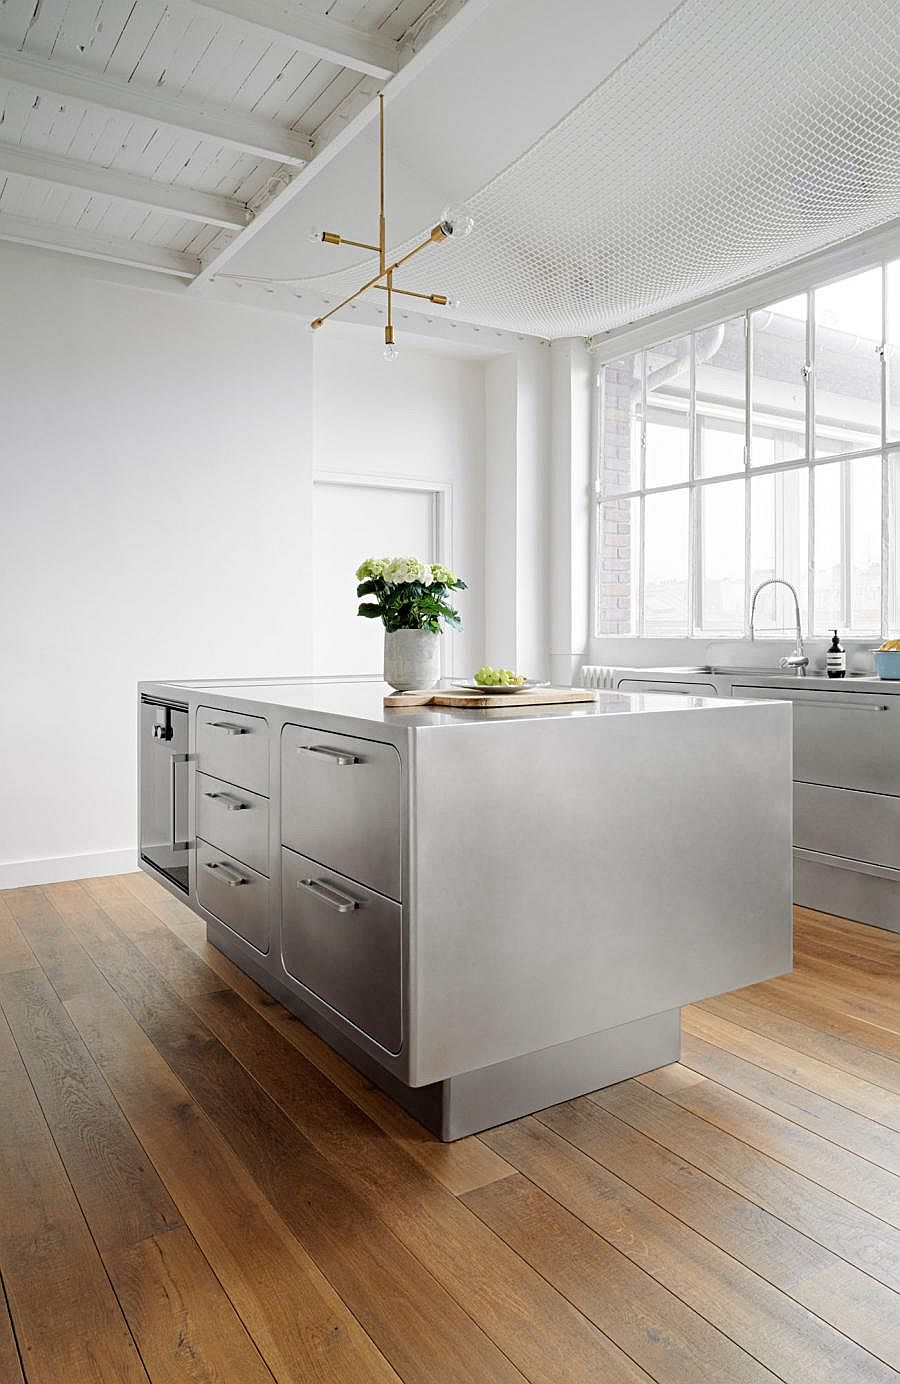 Sizzling Stainless Steel Kitchen Brings Home Professional